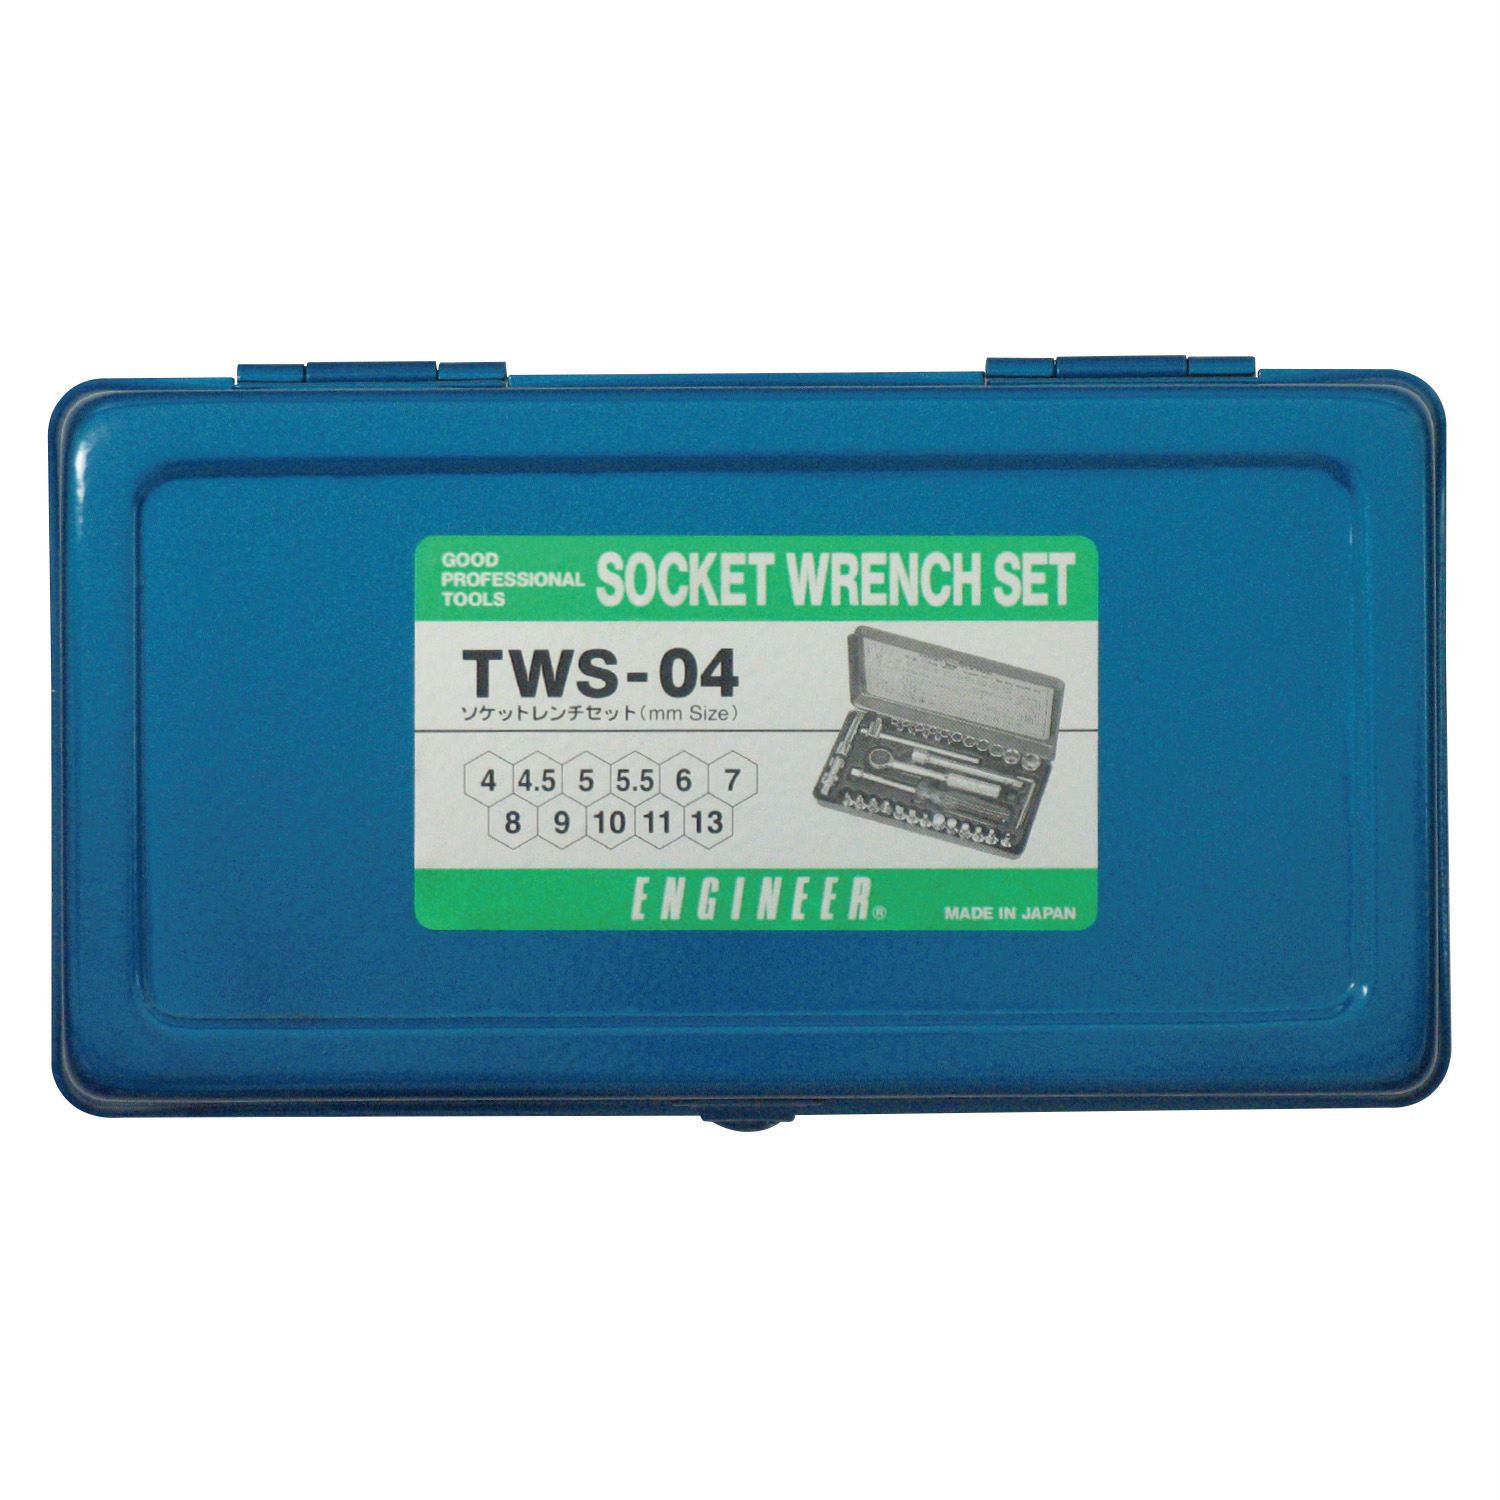 Socket Wrench Set TWS-04